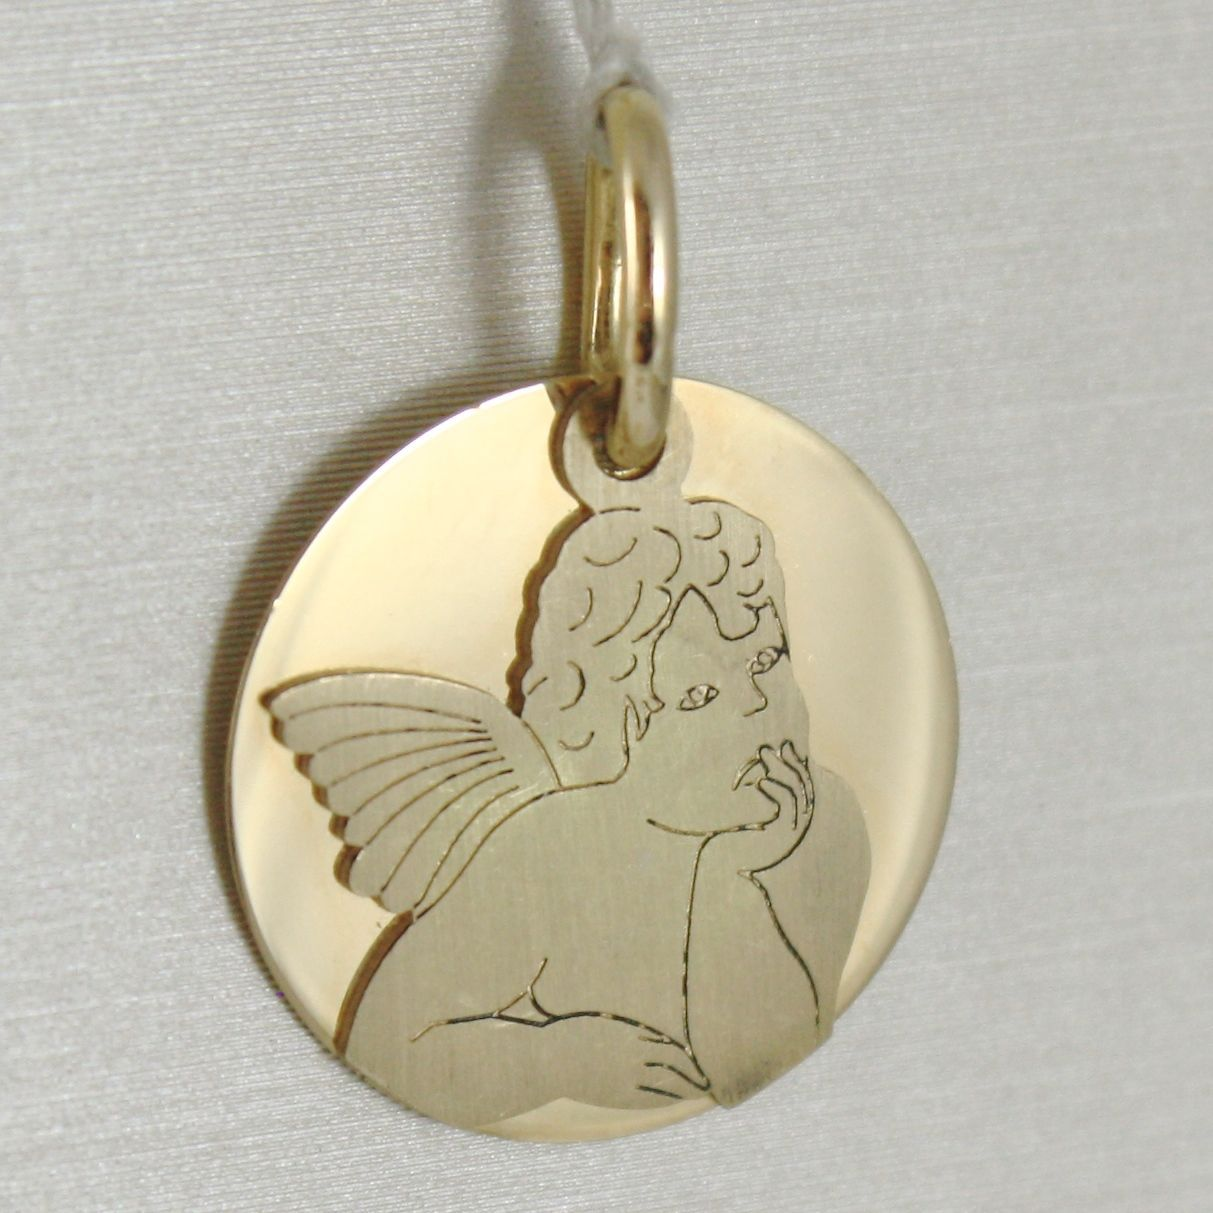 PENDANT MEDAL ROUND YELLOW GOLD 750 18K, ANGEL GUARDIAN DOUBLE LAYER, SATIN